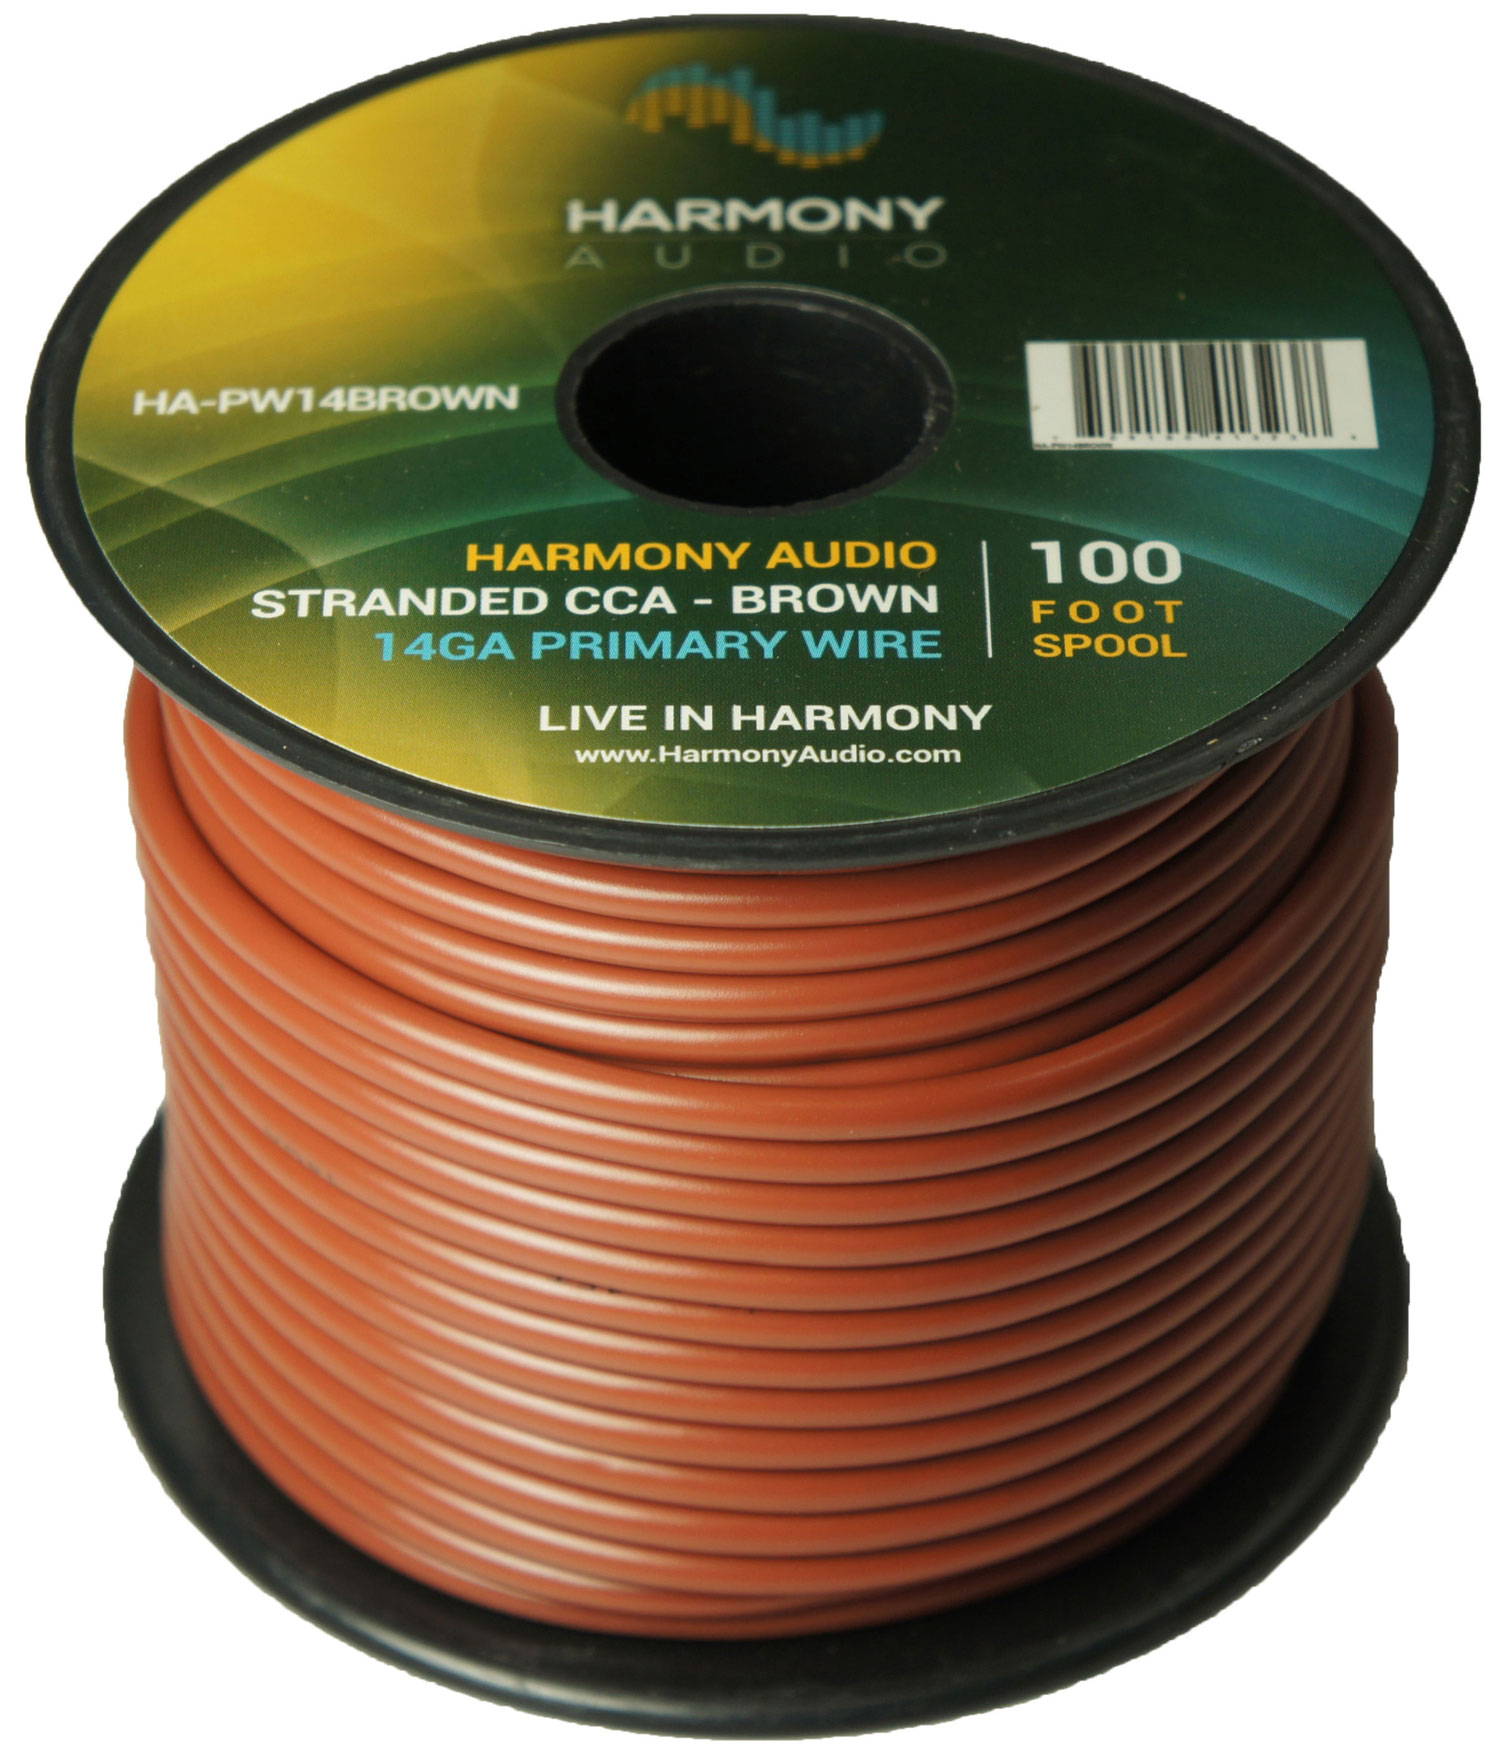 Harmony Audio HA-PW14BROWN Primary Single Conductor 14 Gauge Brown Power or Ground Wire Roll 100 Feet Cable for Car Audio / Trailer / Model Train / Remote